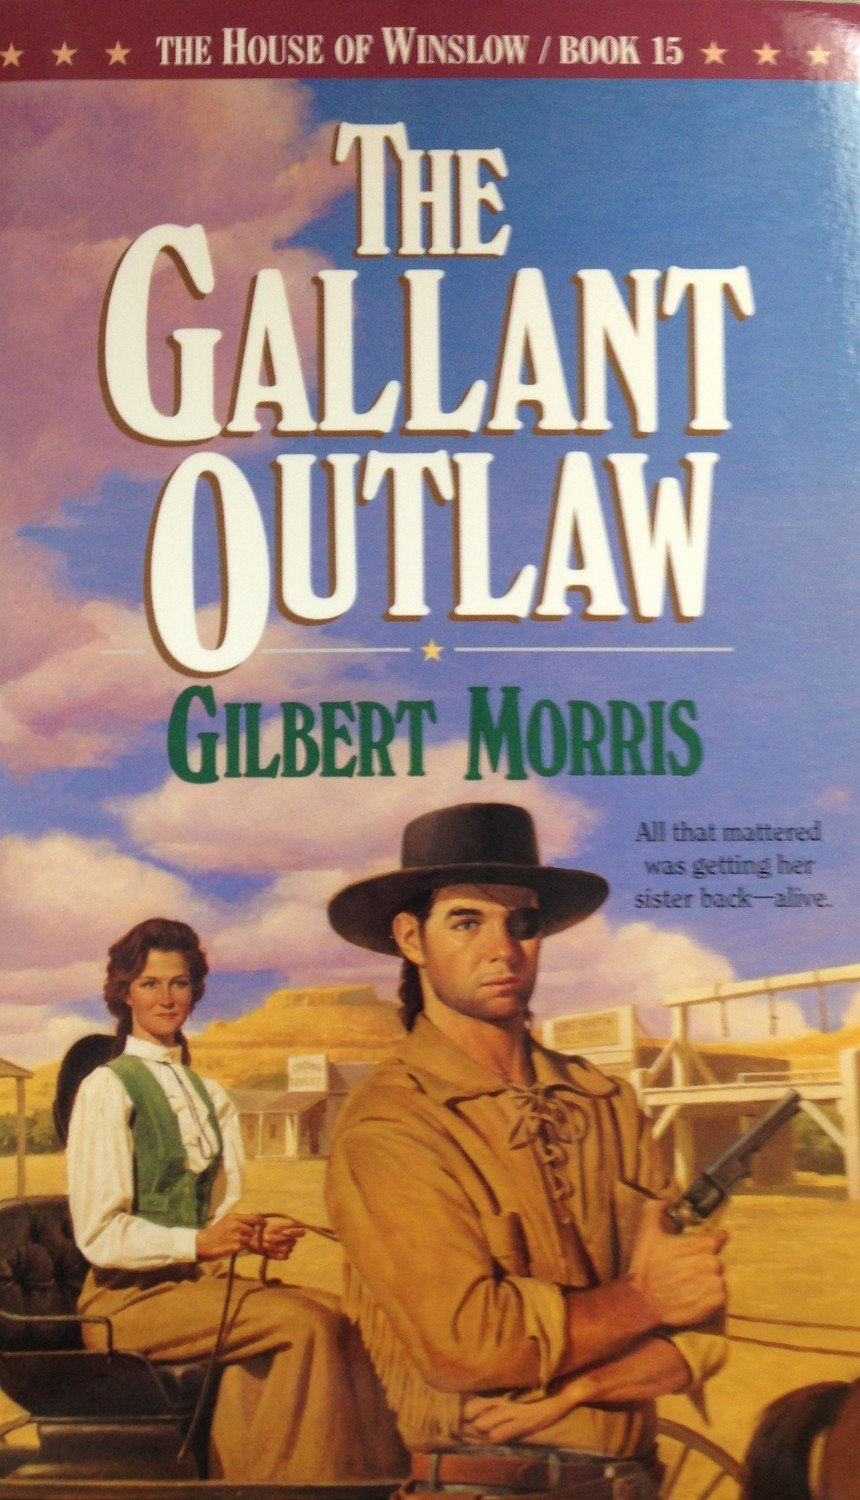 The Gallant Outlaw :  The House of Winslow Book 15 by Gilbert Morris